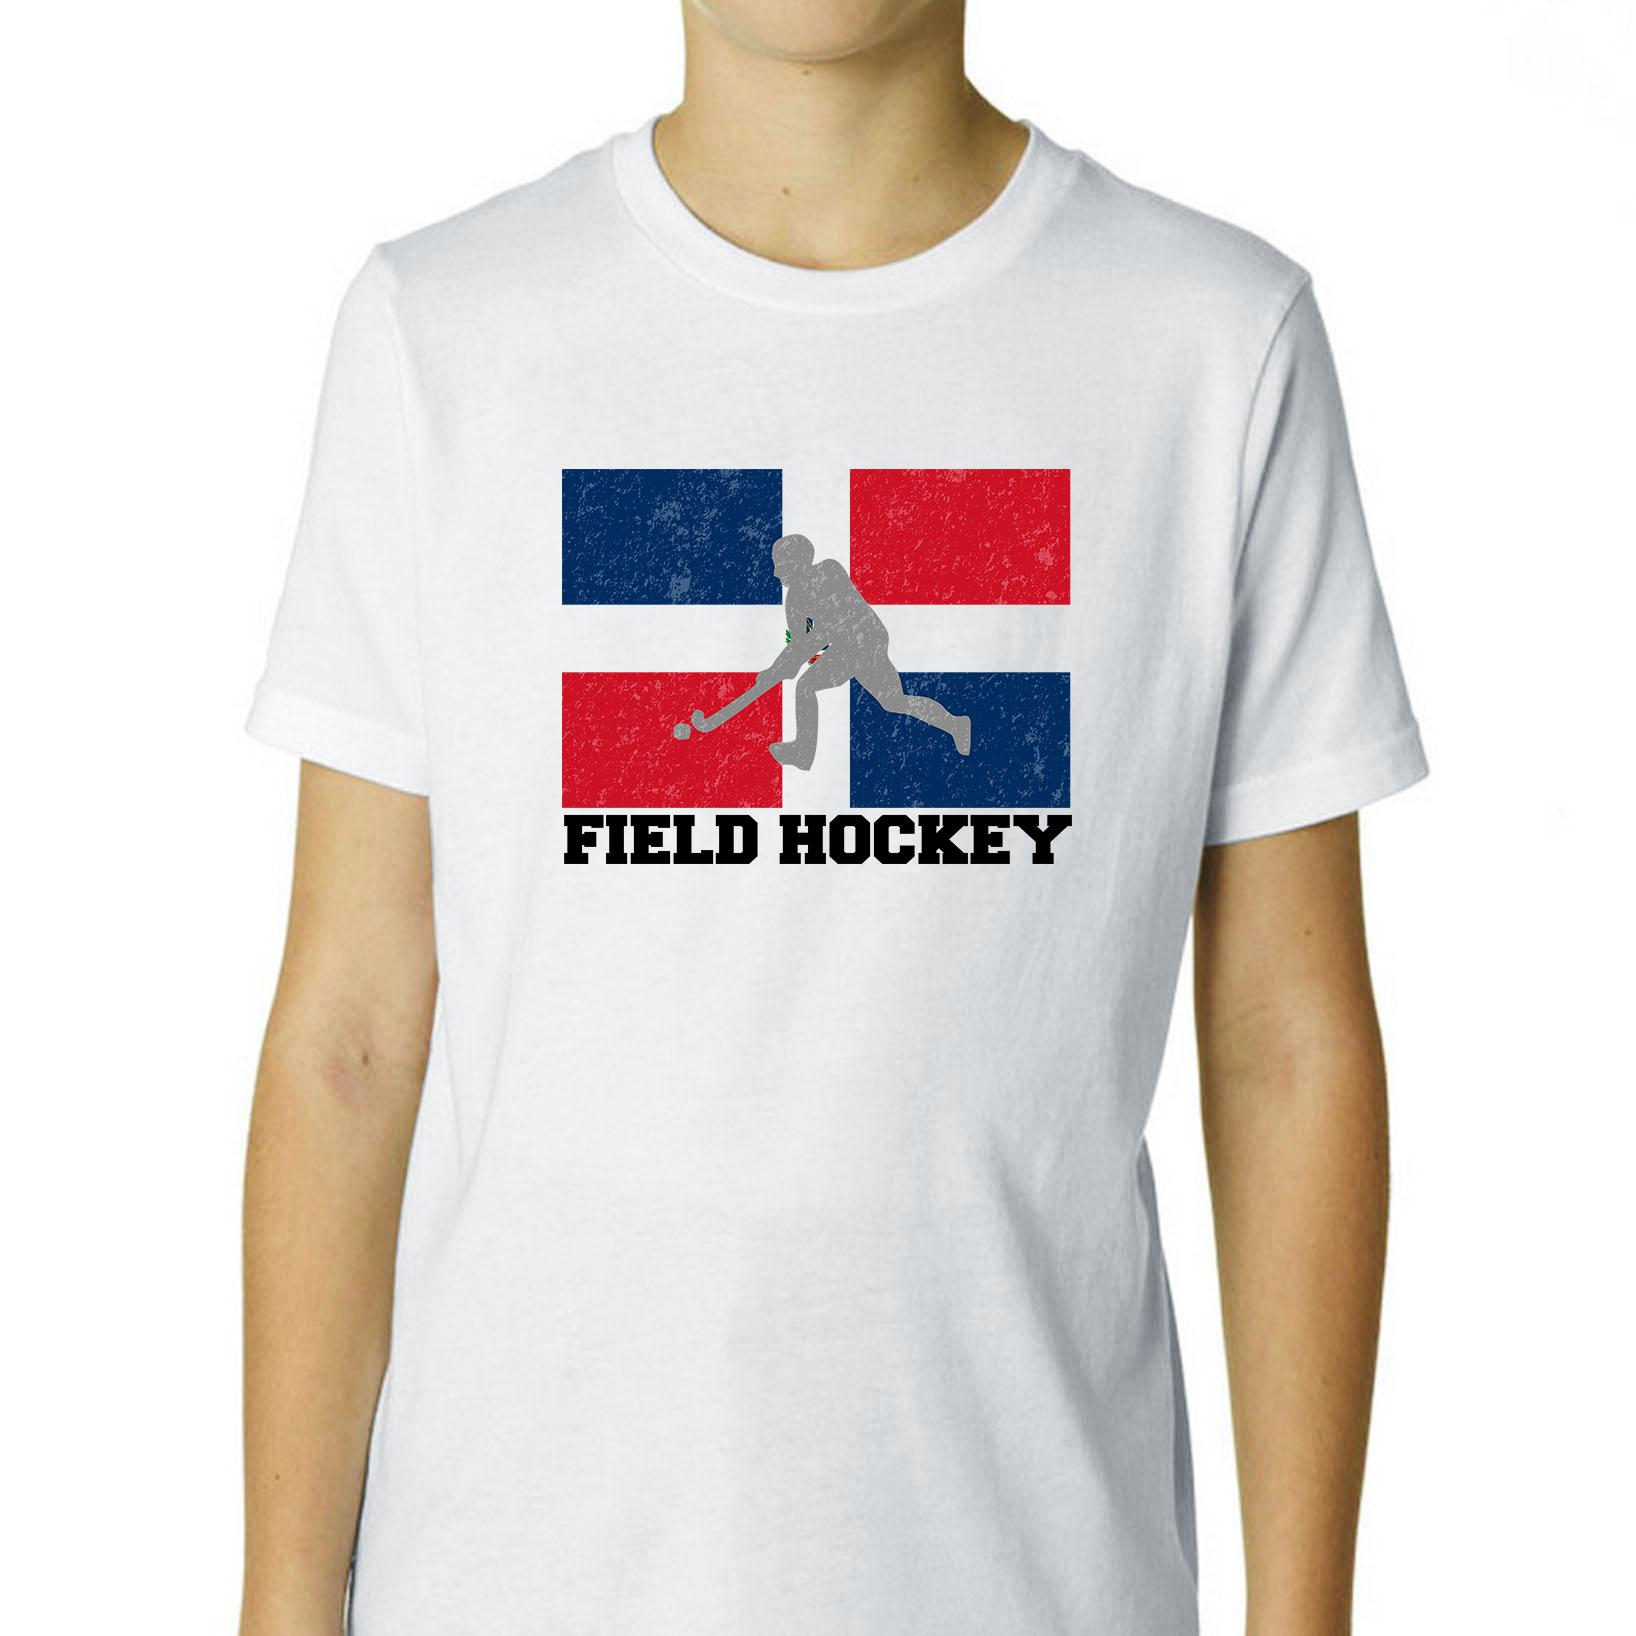 Dominican Republic Olympic Field Hockey Flag Boy's Cotton Youth T-Shirt by Hollywood Thread